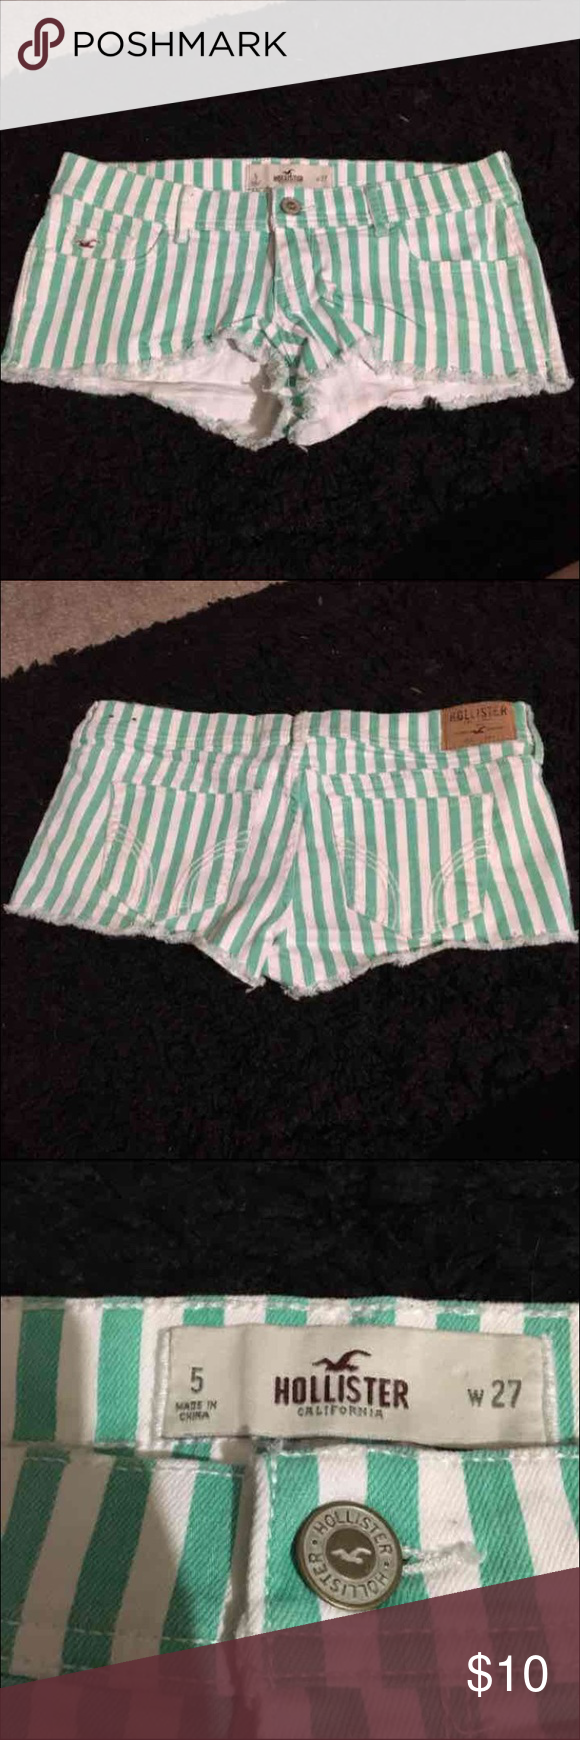 Hollister shorts Only worn a couple times size 5 Hollister Shorts